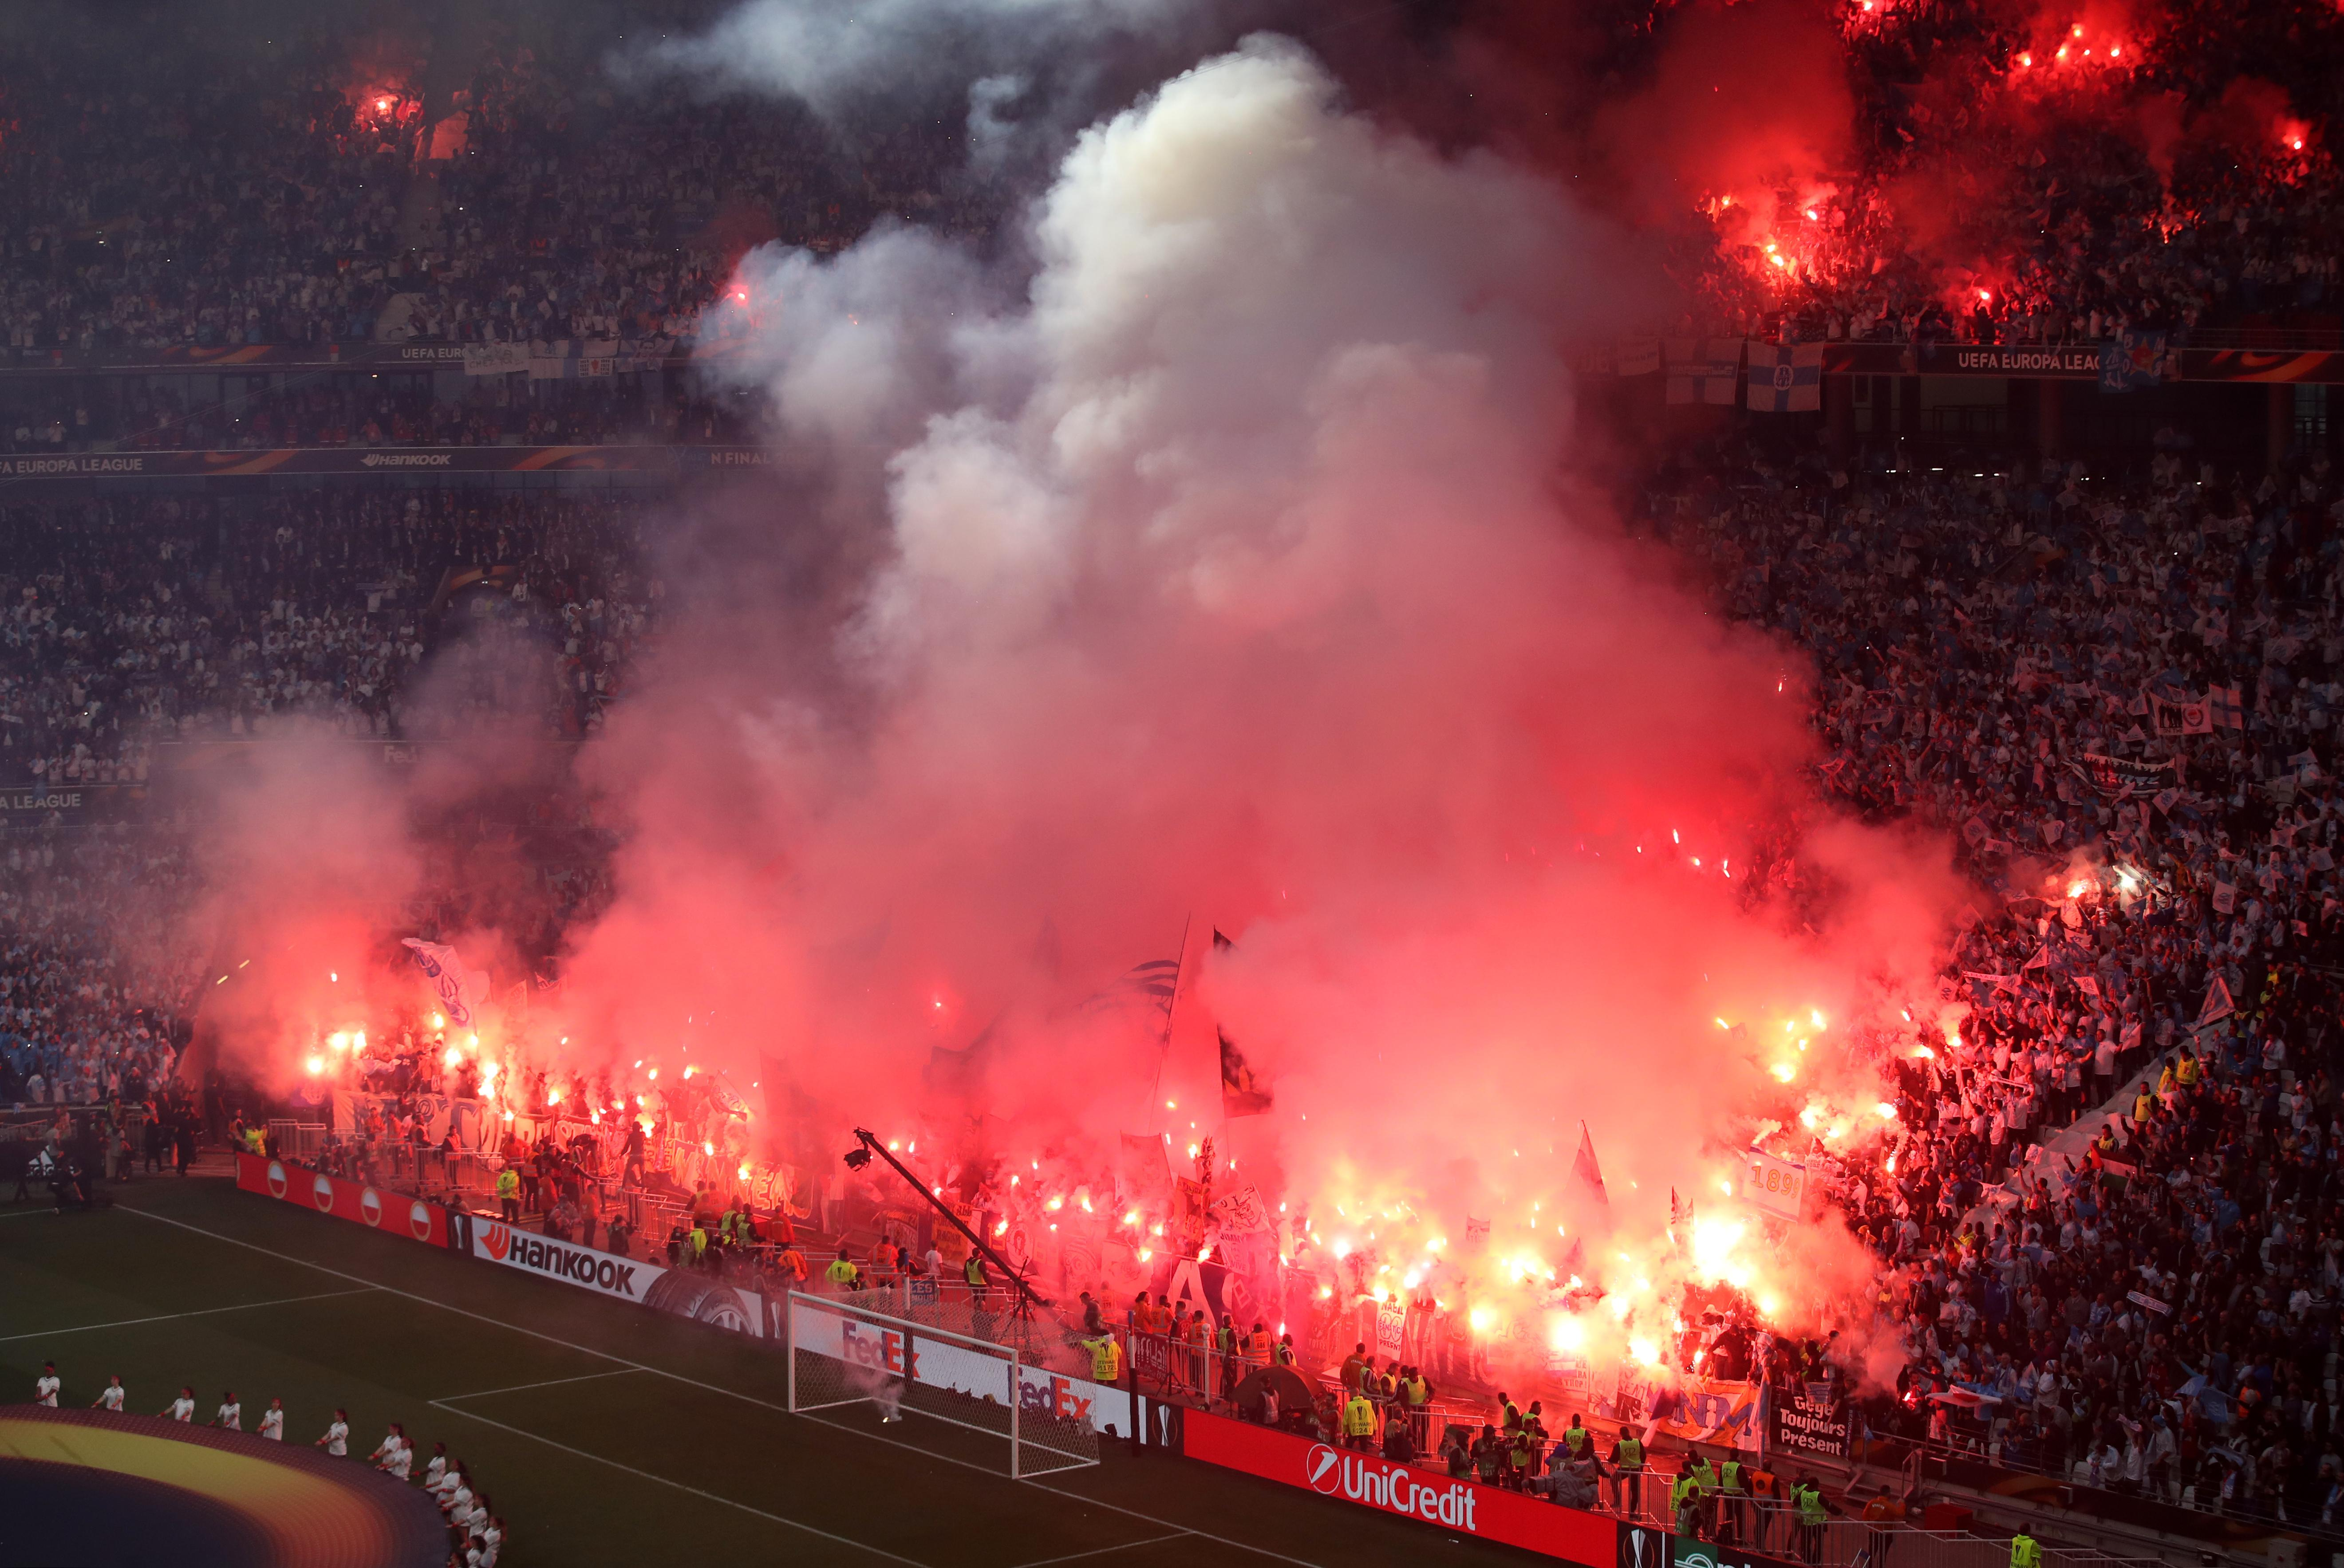 Atletico Madrid fans stadium closure after 'racist' banner in Europa League final